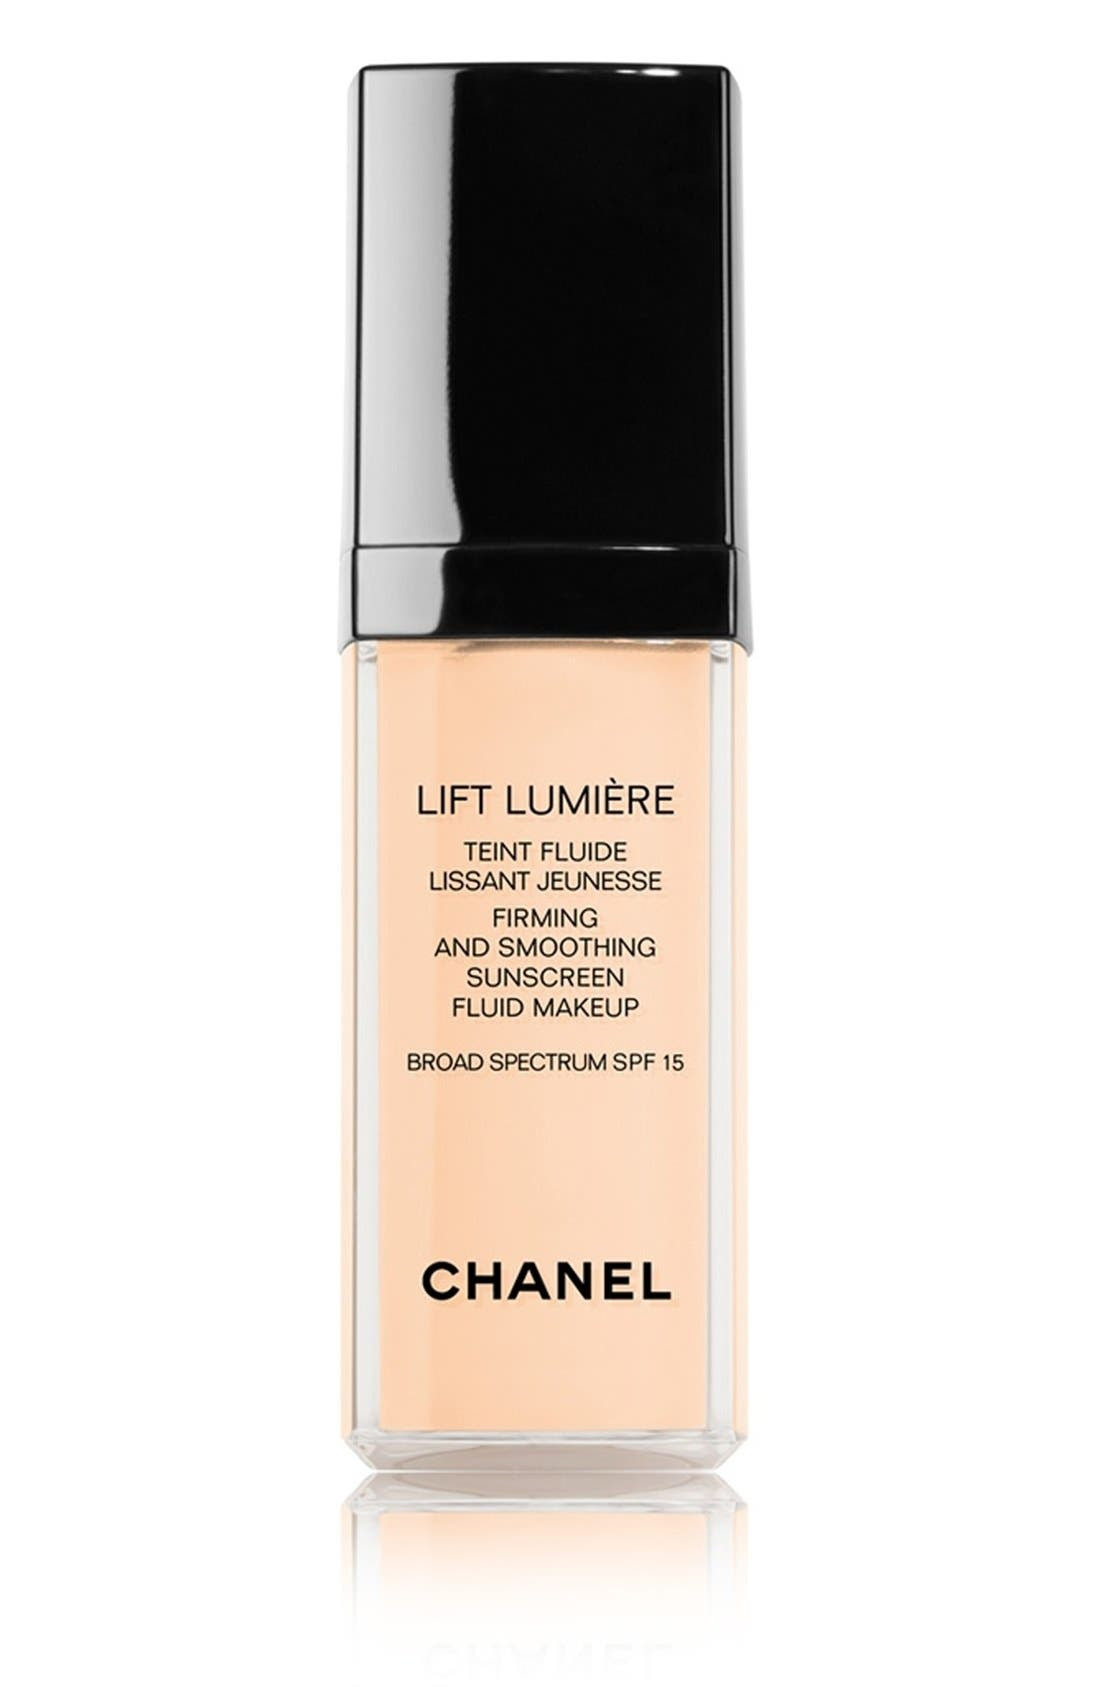 CHANEL LIFT LUMIÈRE 